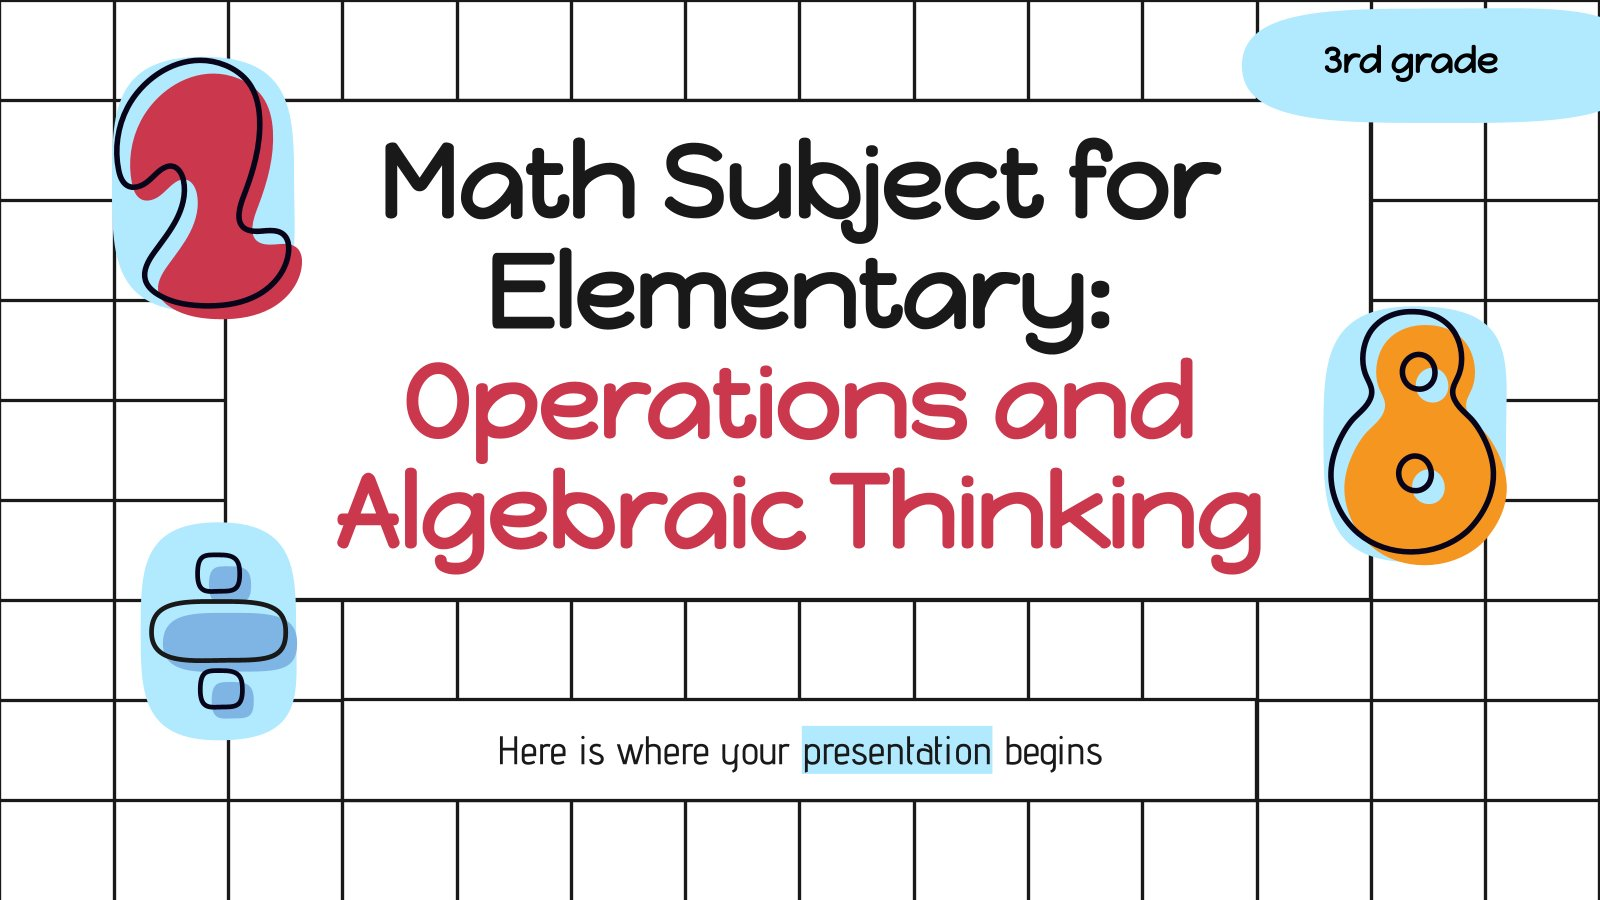 Math Subject for Elementary - 3rd Grade: Operations and Algebraic Thinking presentation template